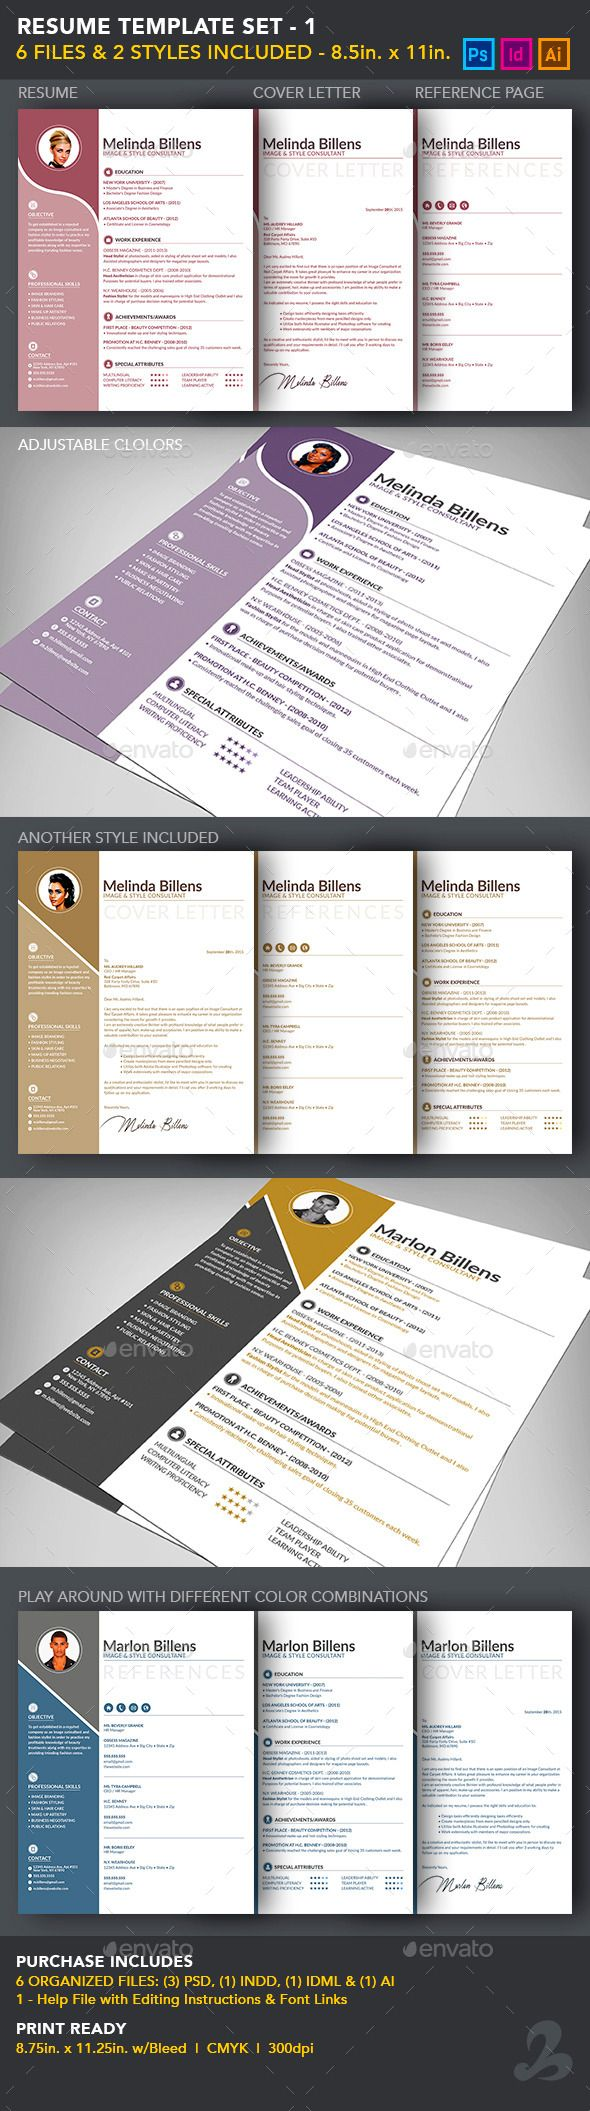 Stylish Resume Template Set | Schreiben